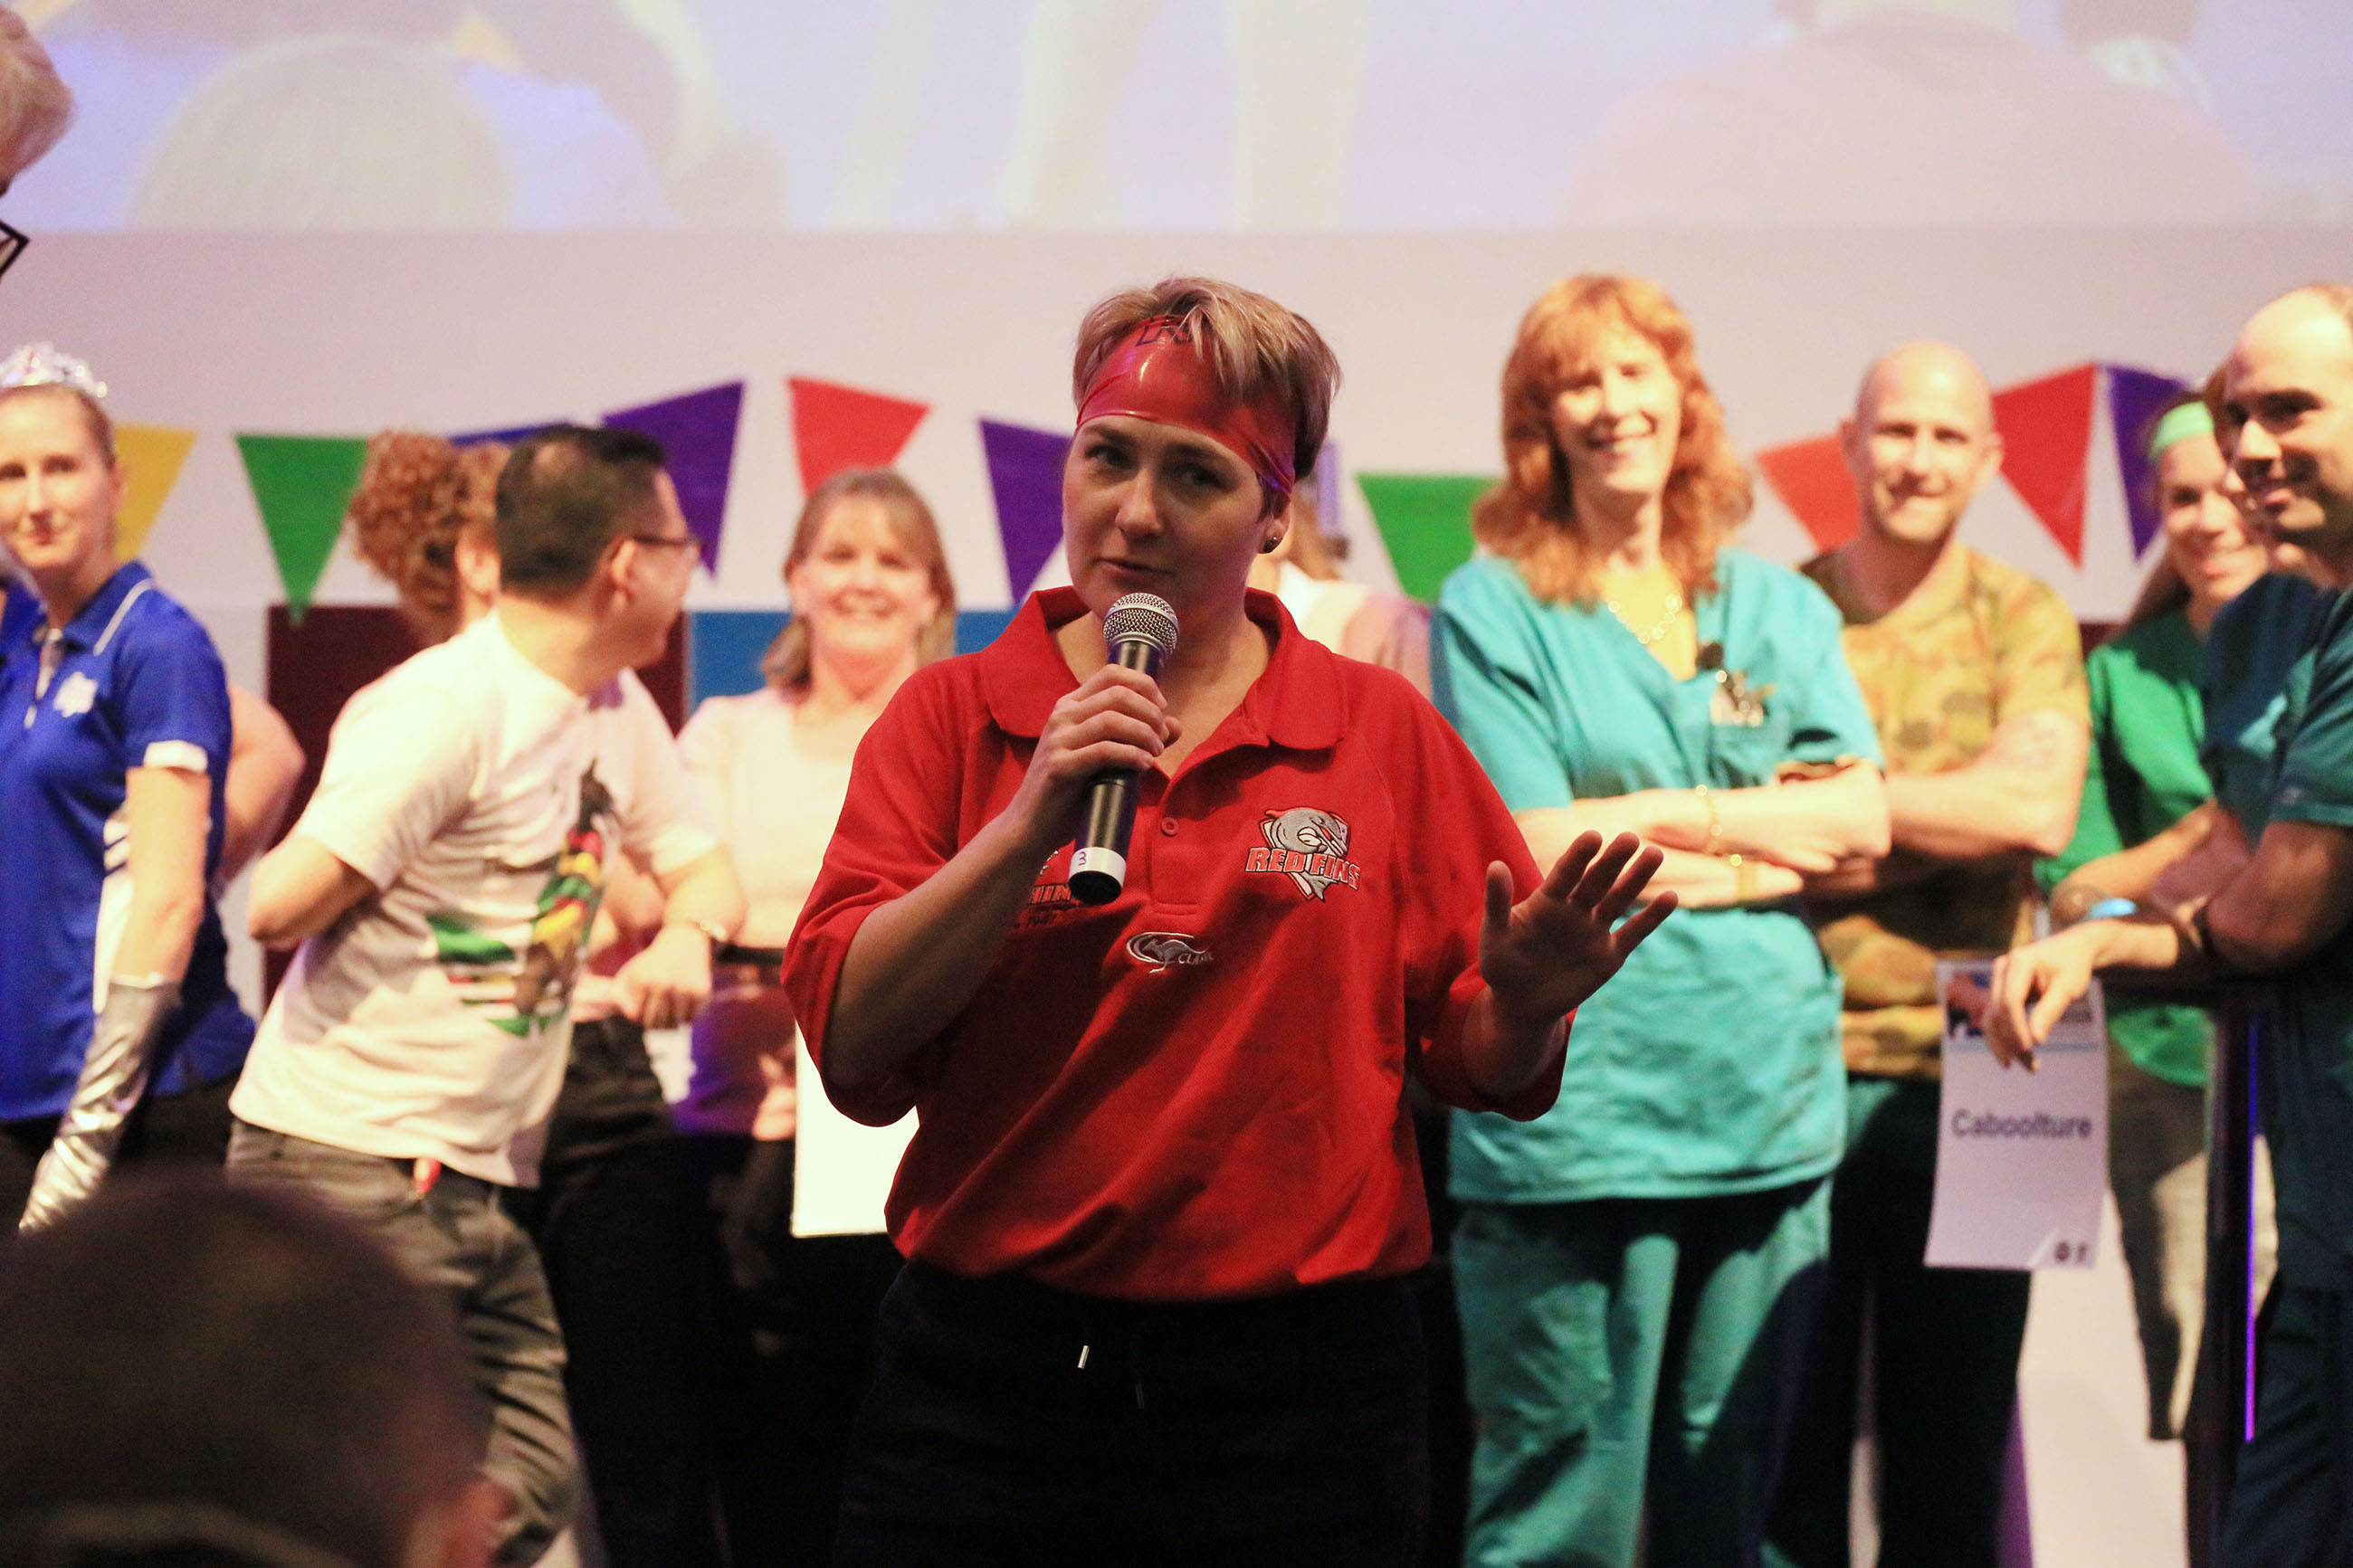 Redcliffe know how to please a crowd, reciting Metro North's values for the final Quiz spectacular!